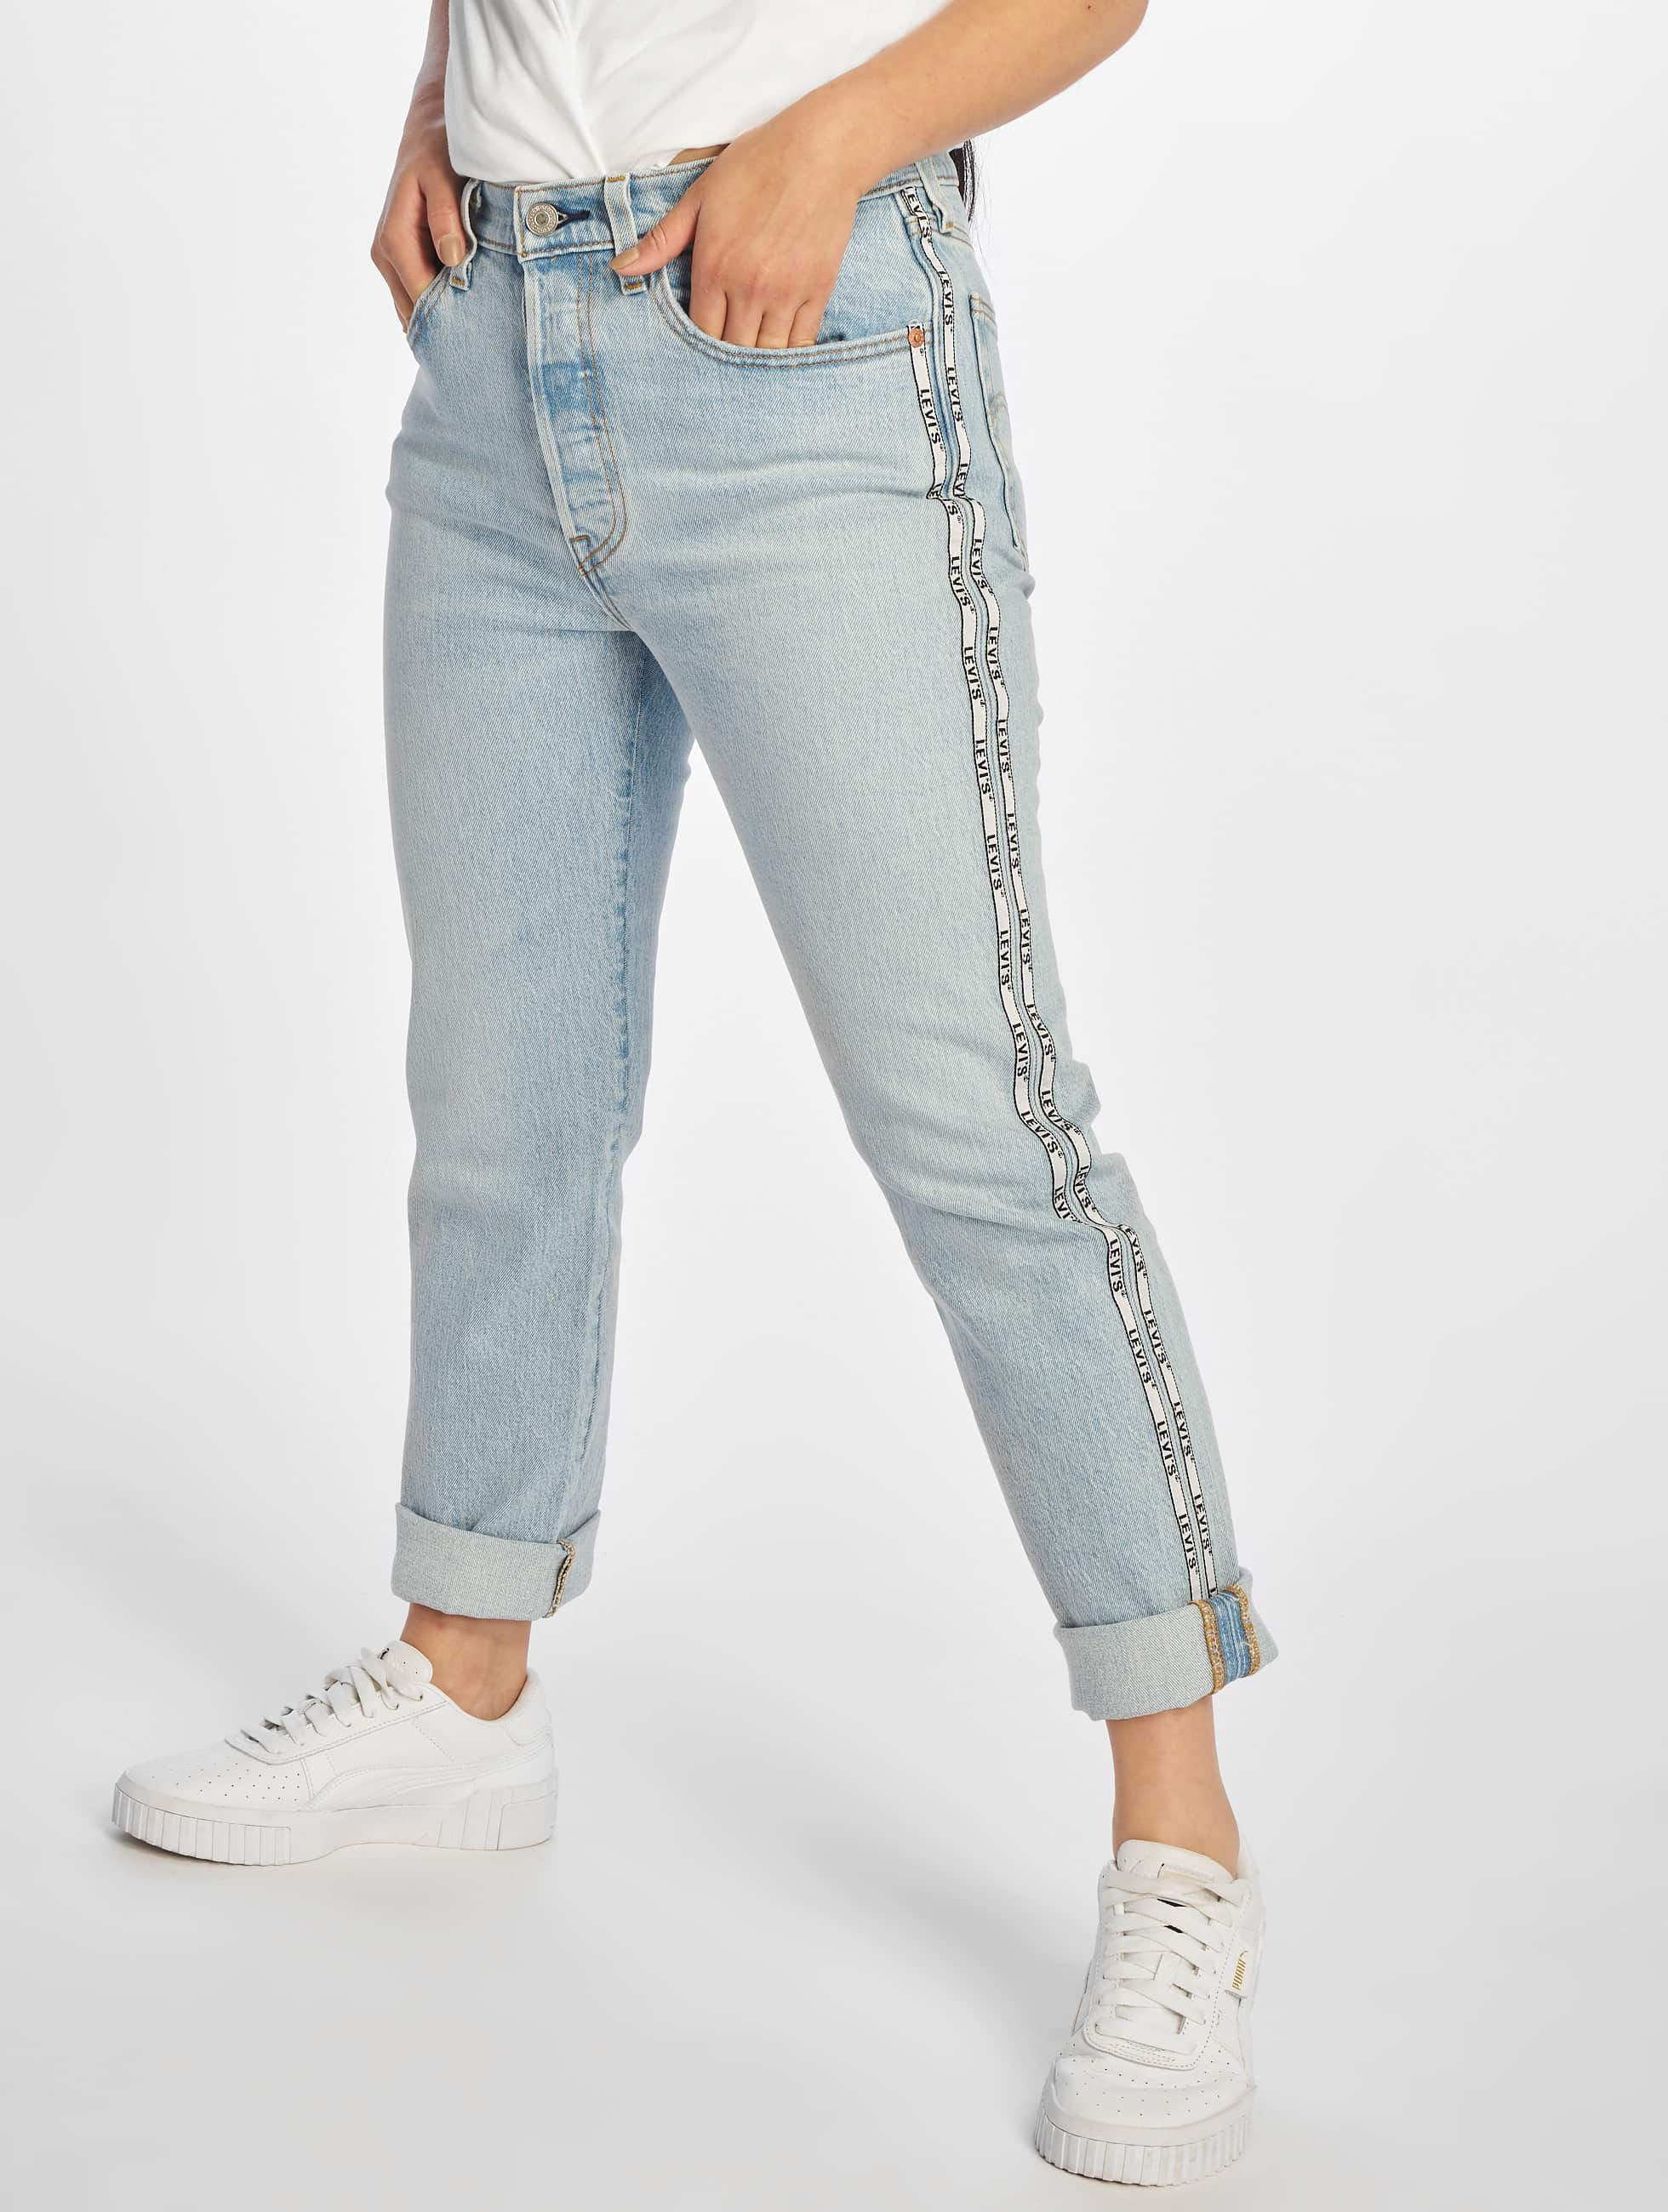 Levis 501 Femme Coupe Droite Levi S 501 Crop Straight Fit Jeans Dibs With Tape